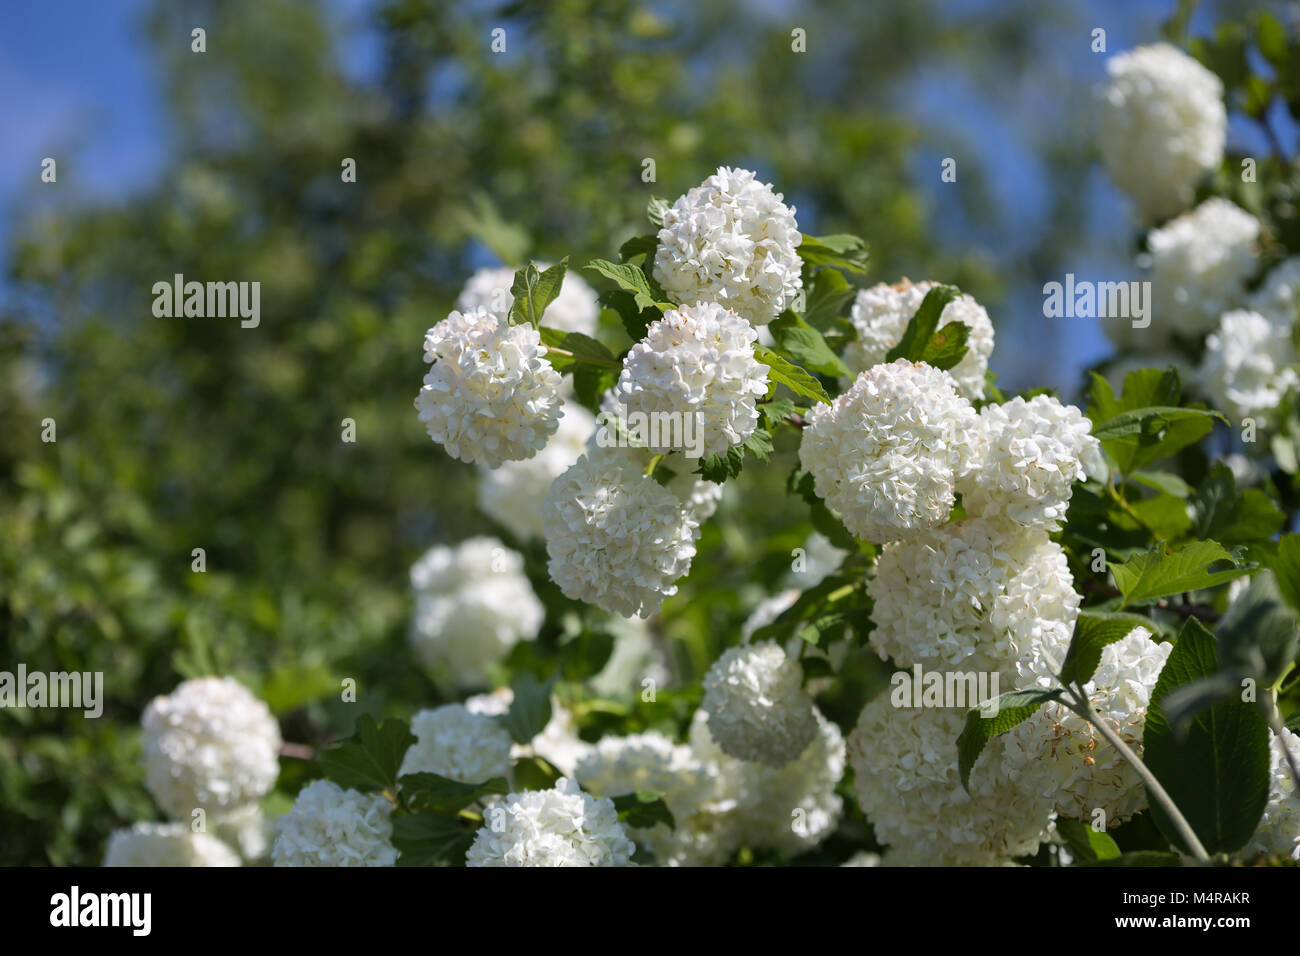 Ornamental plant snowball viburnum white flowers and green leaves ornamental plant snowball viburnum white flowers and green leaves mightylinksfo